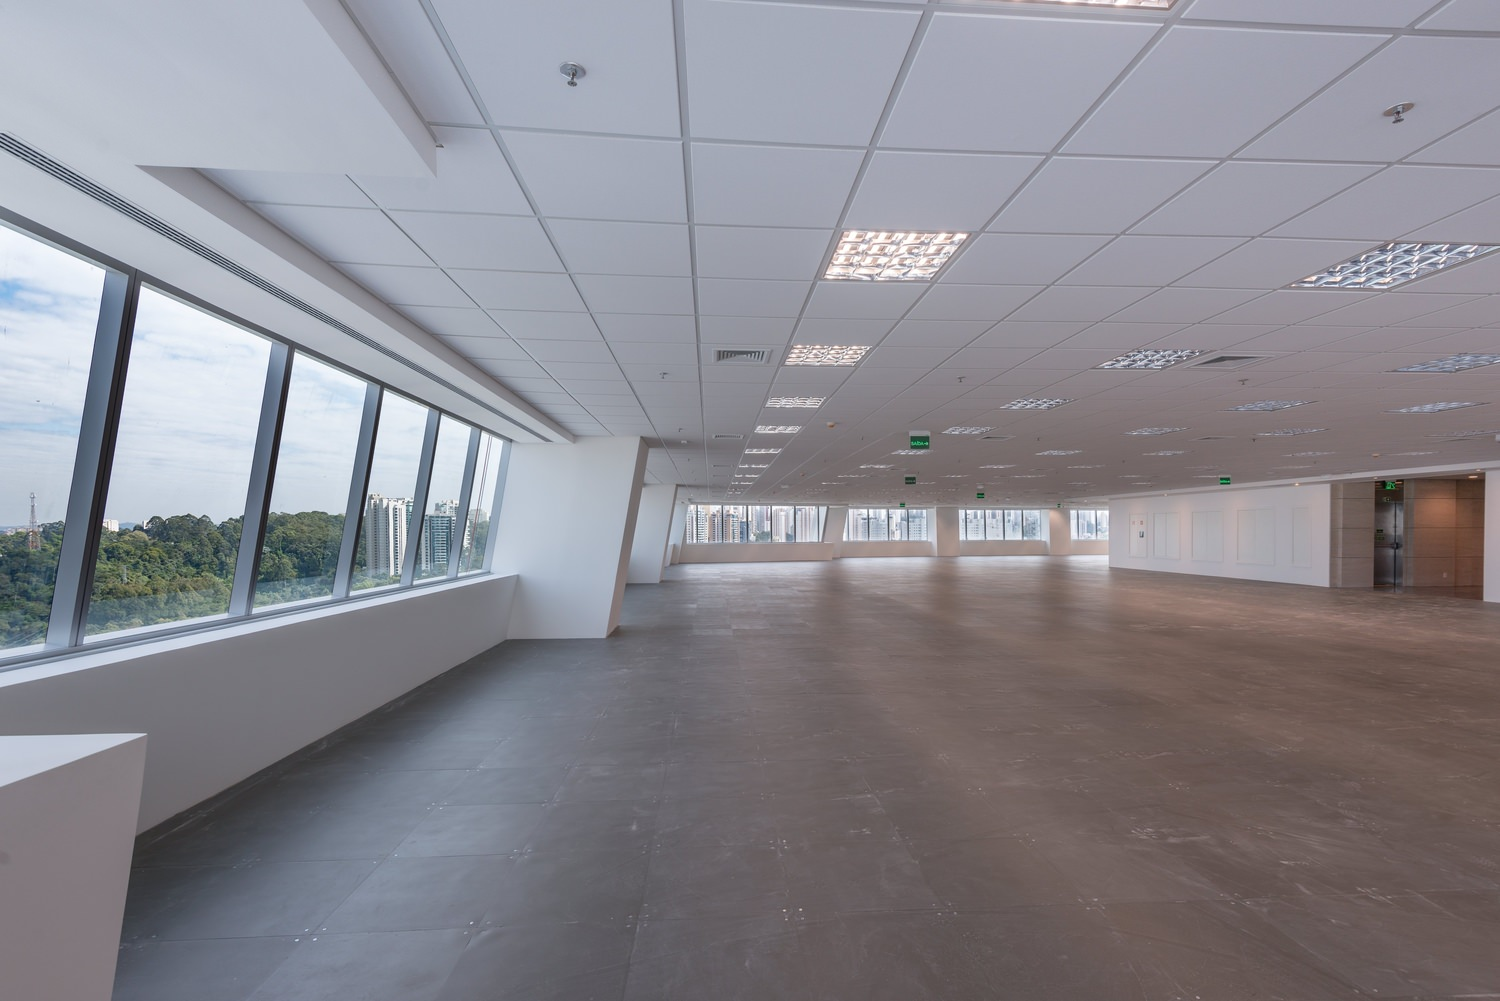 A large empty room with white ceiling panels and walls that has windows lining the sides.